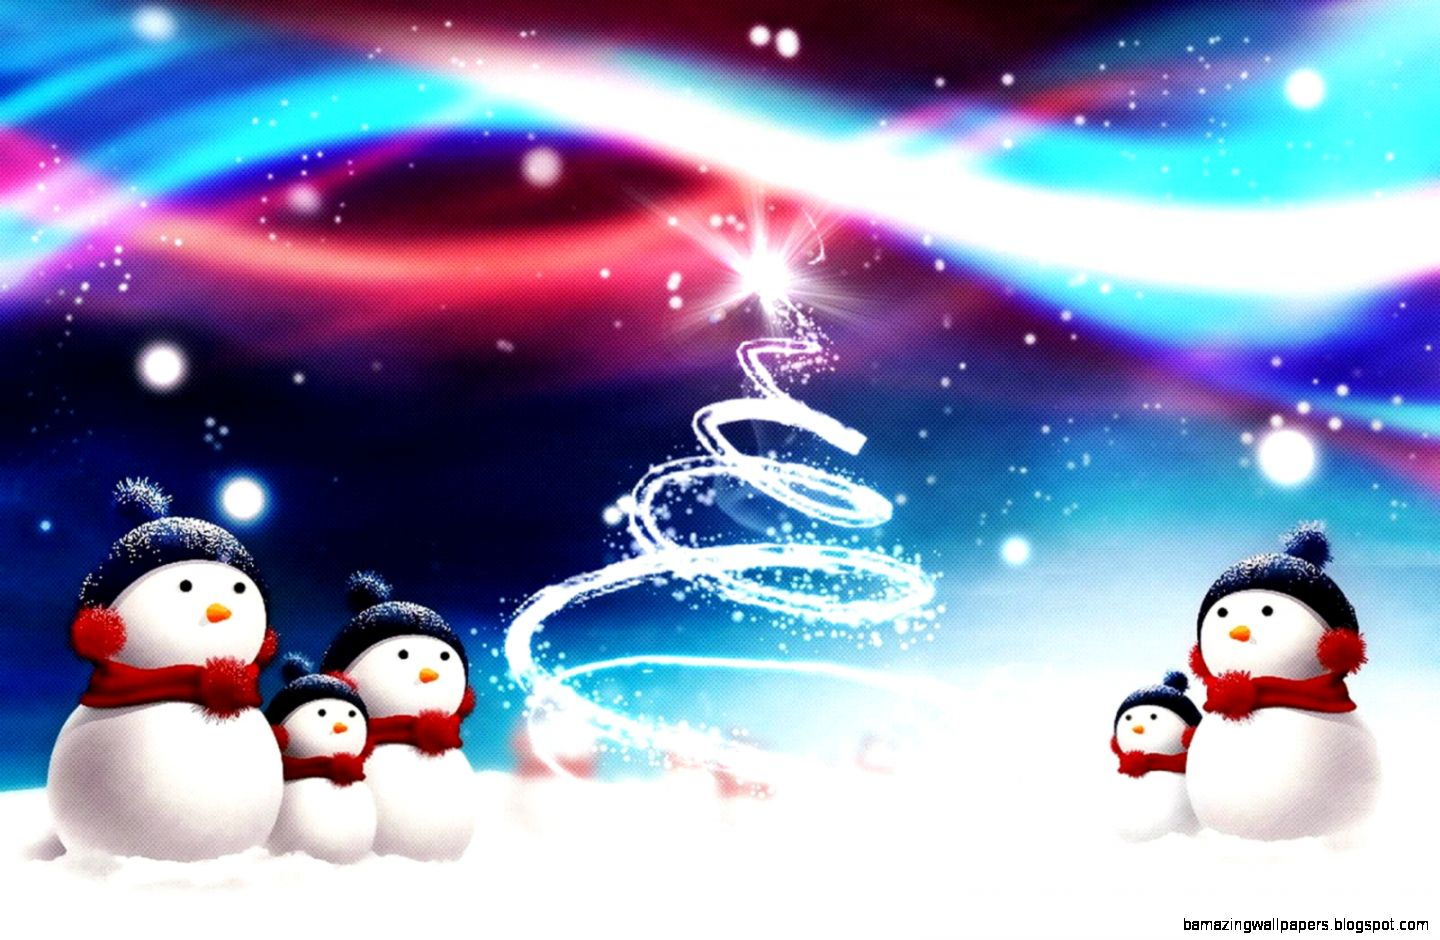 MX84 Snowman Adorable Desktop Wallpapers for Free  40